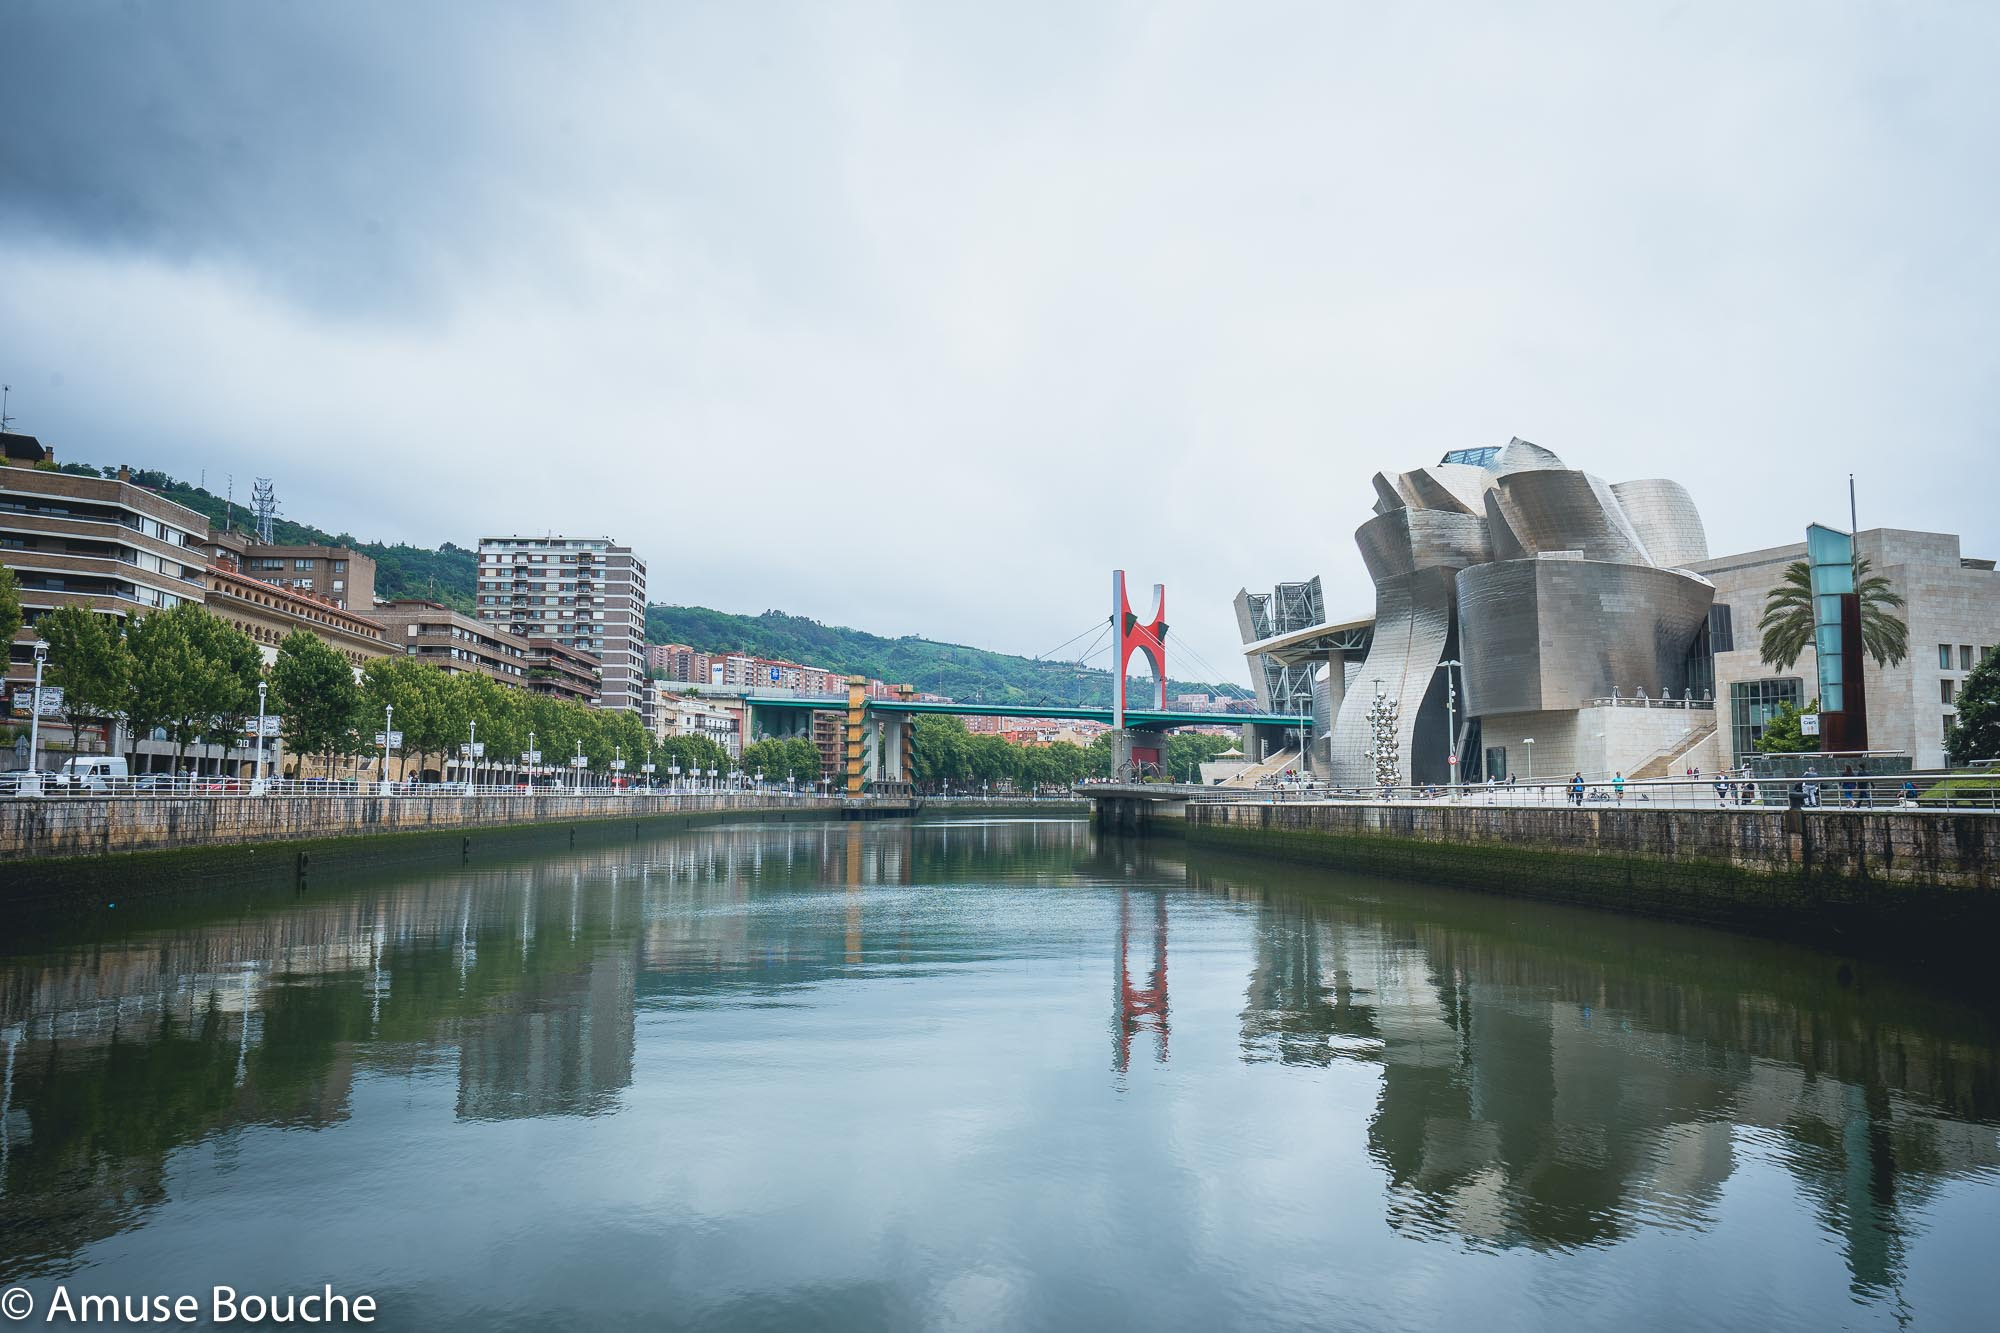 Țara Bascilor Bilbao City View